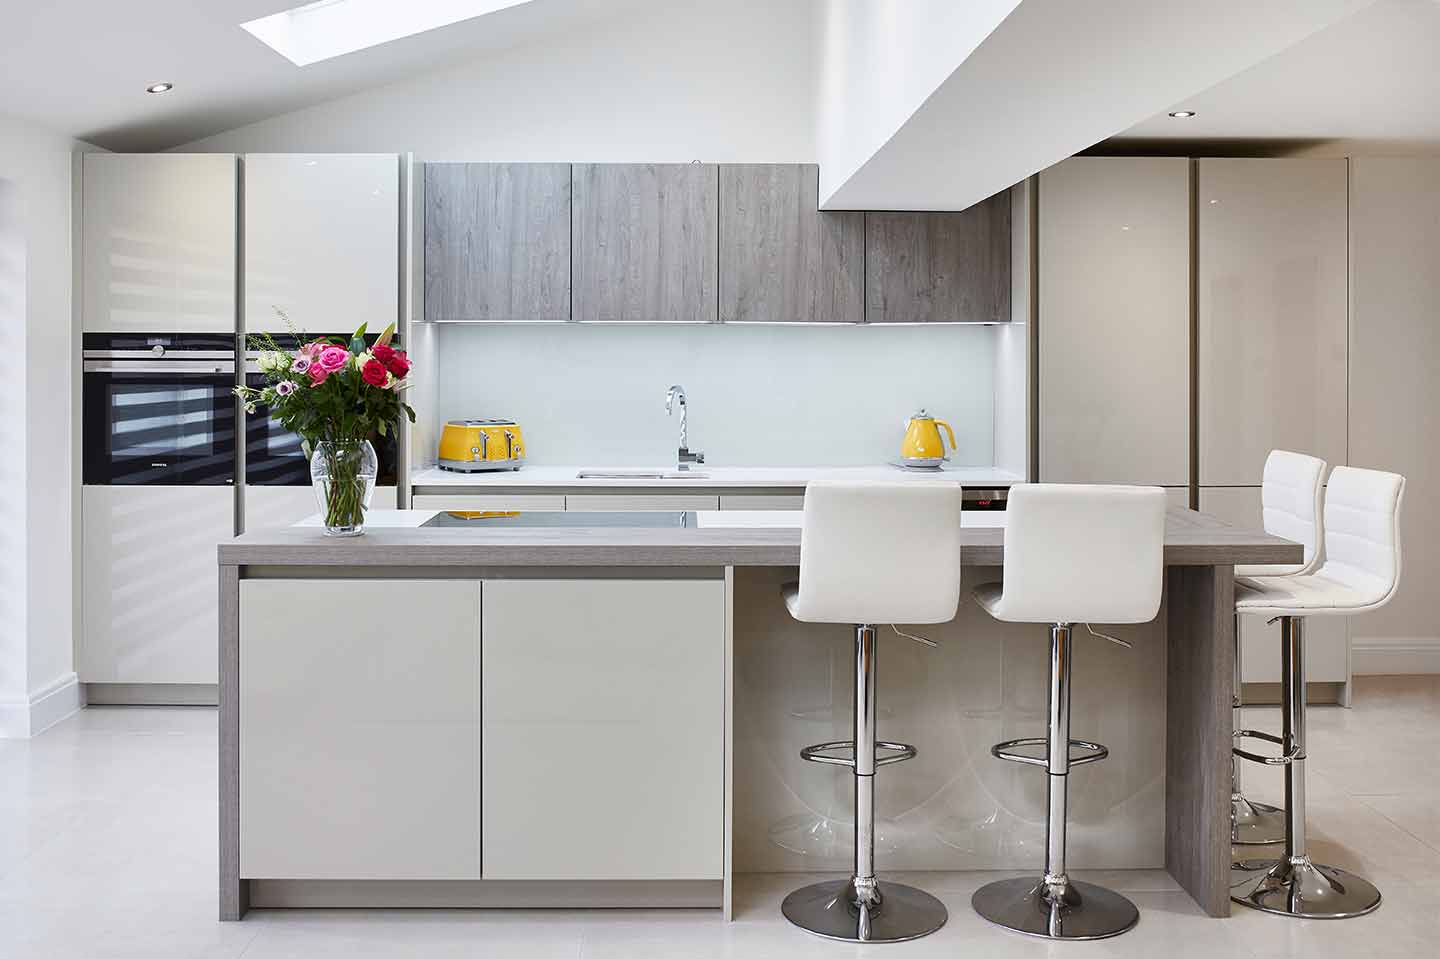 cardiff kitchen renovation